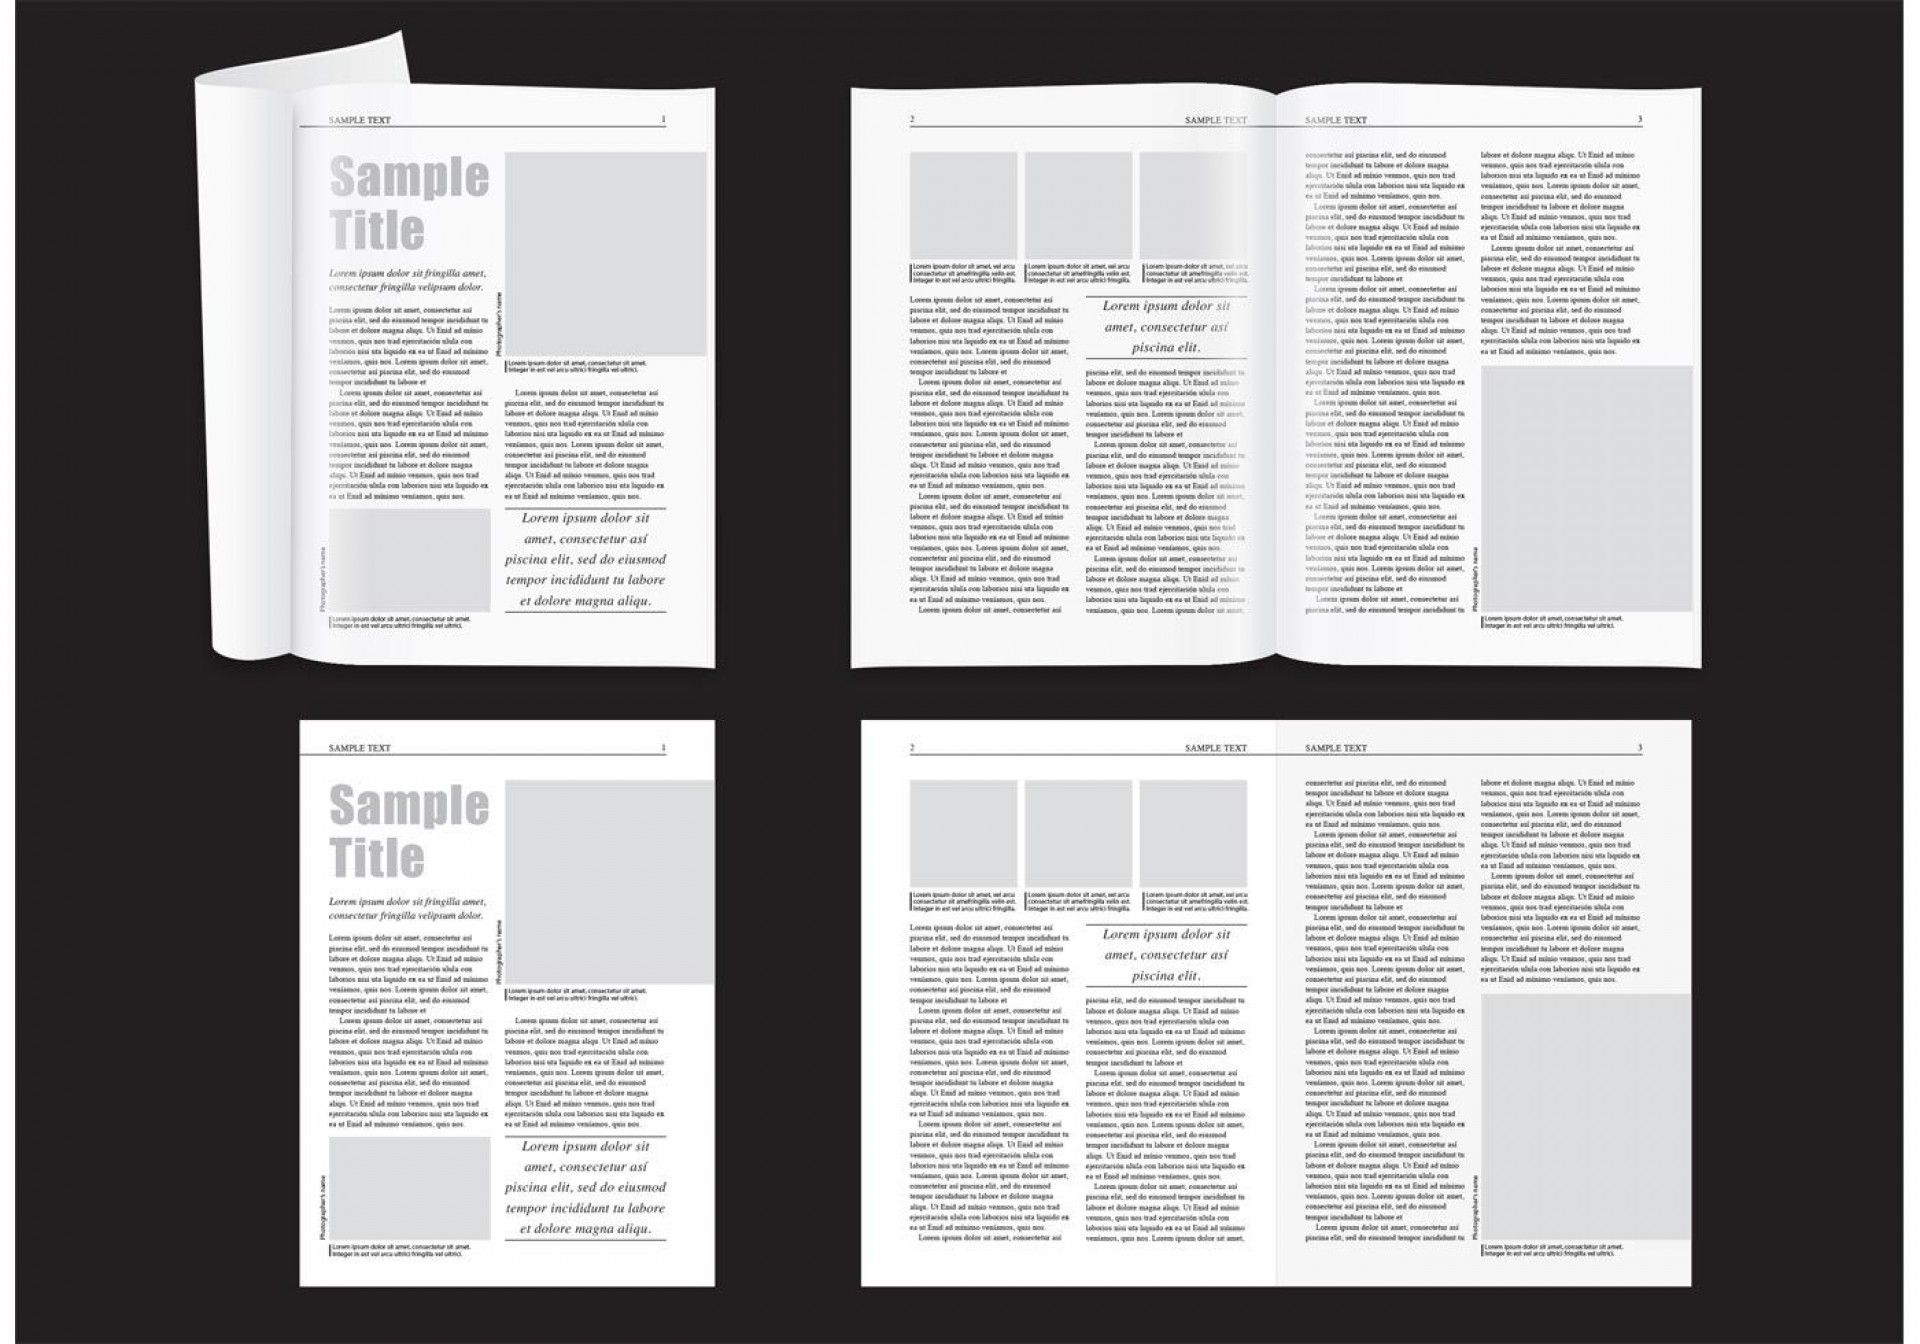 011 Wondrou Magazine Template For Microsoft Word Concept  Layout Design Download1920